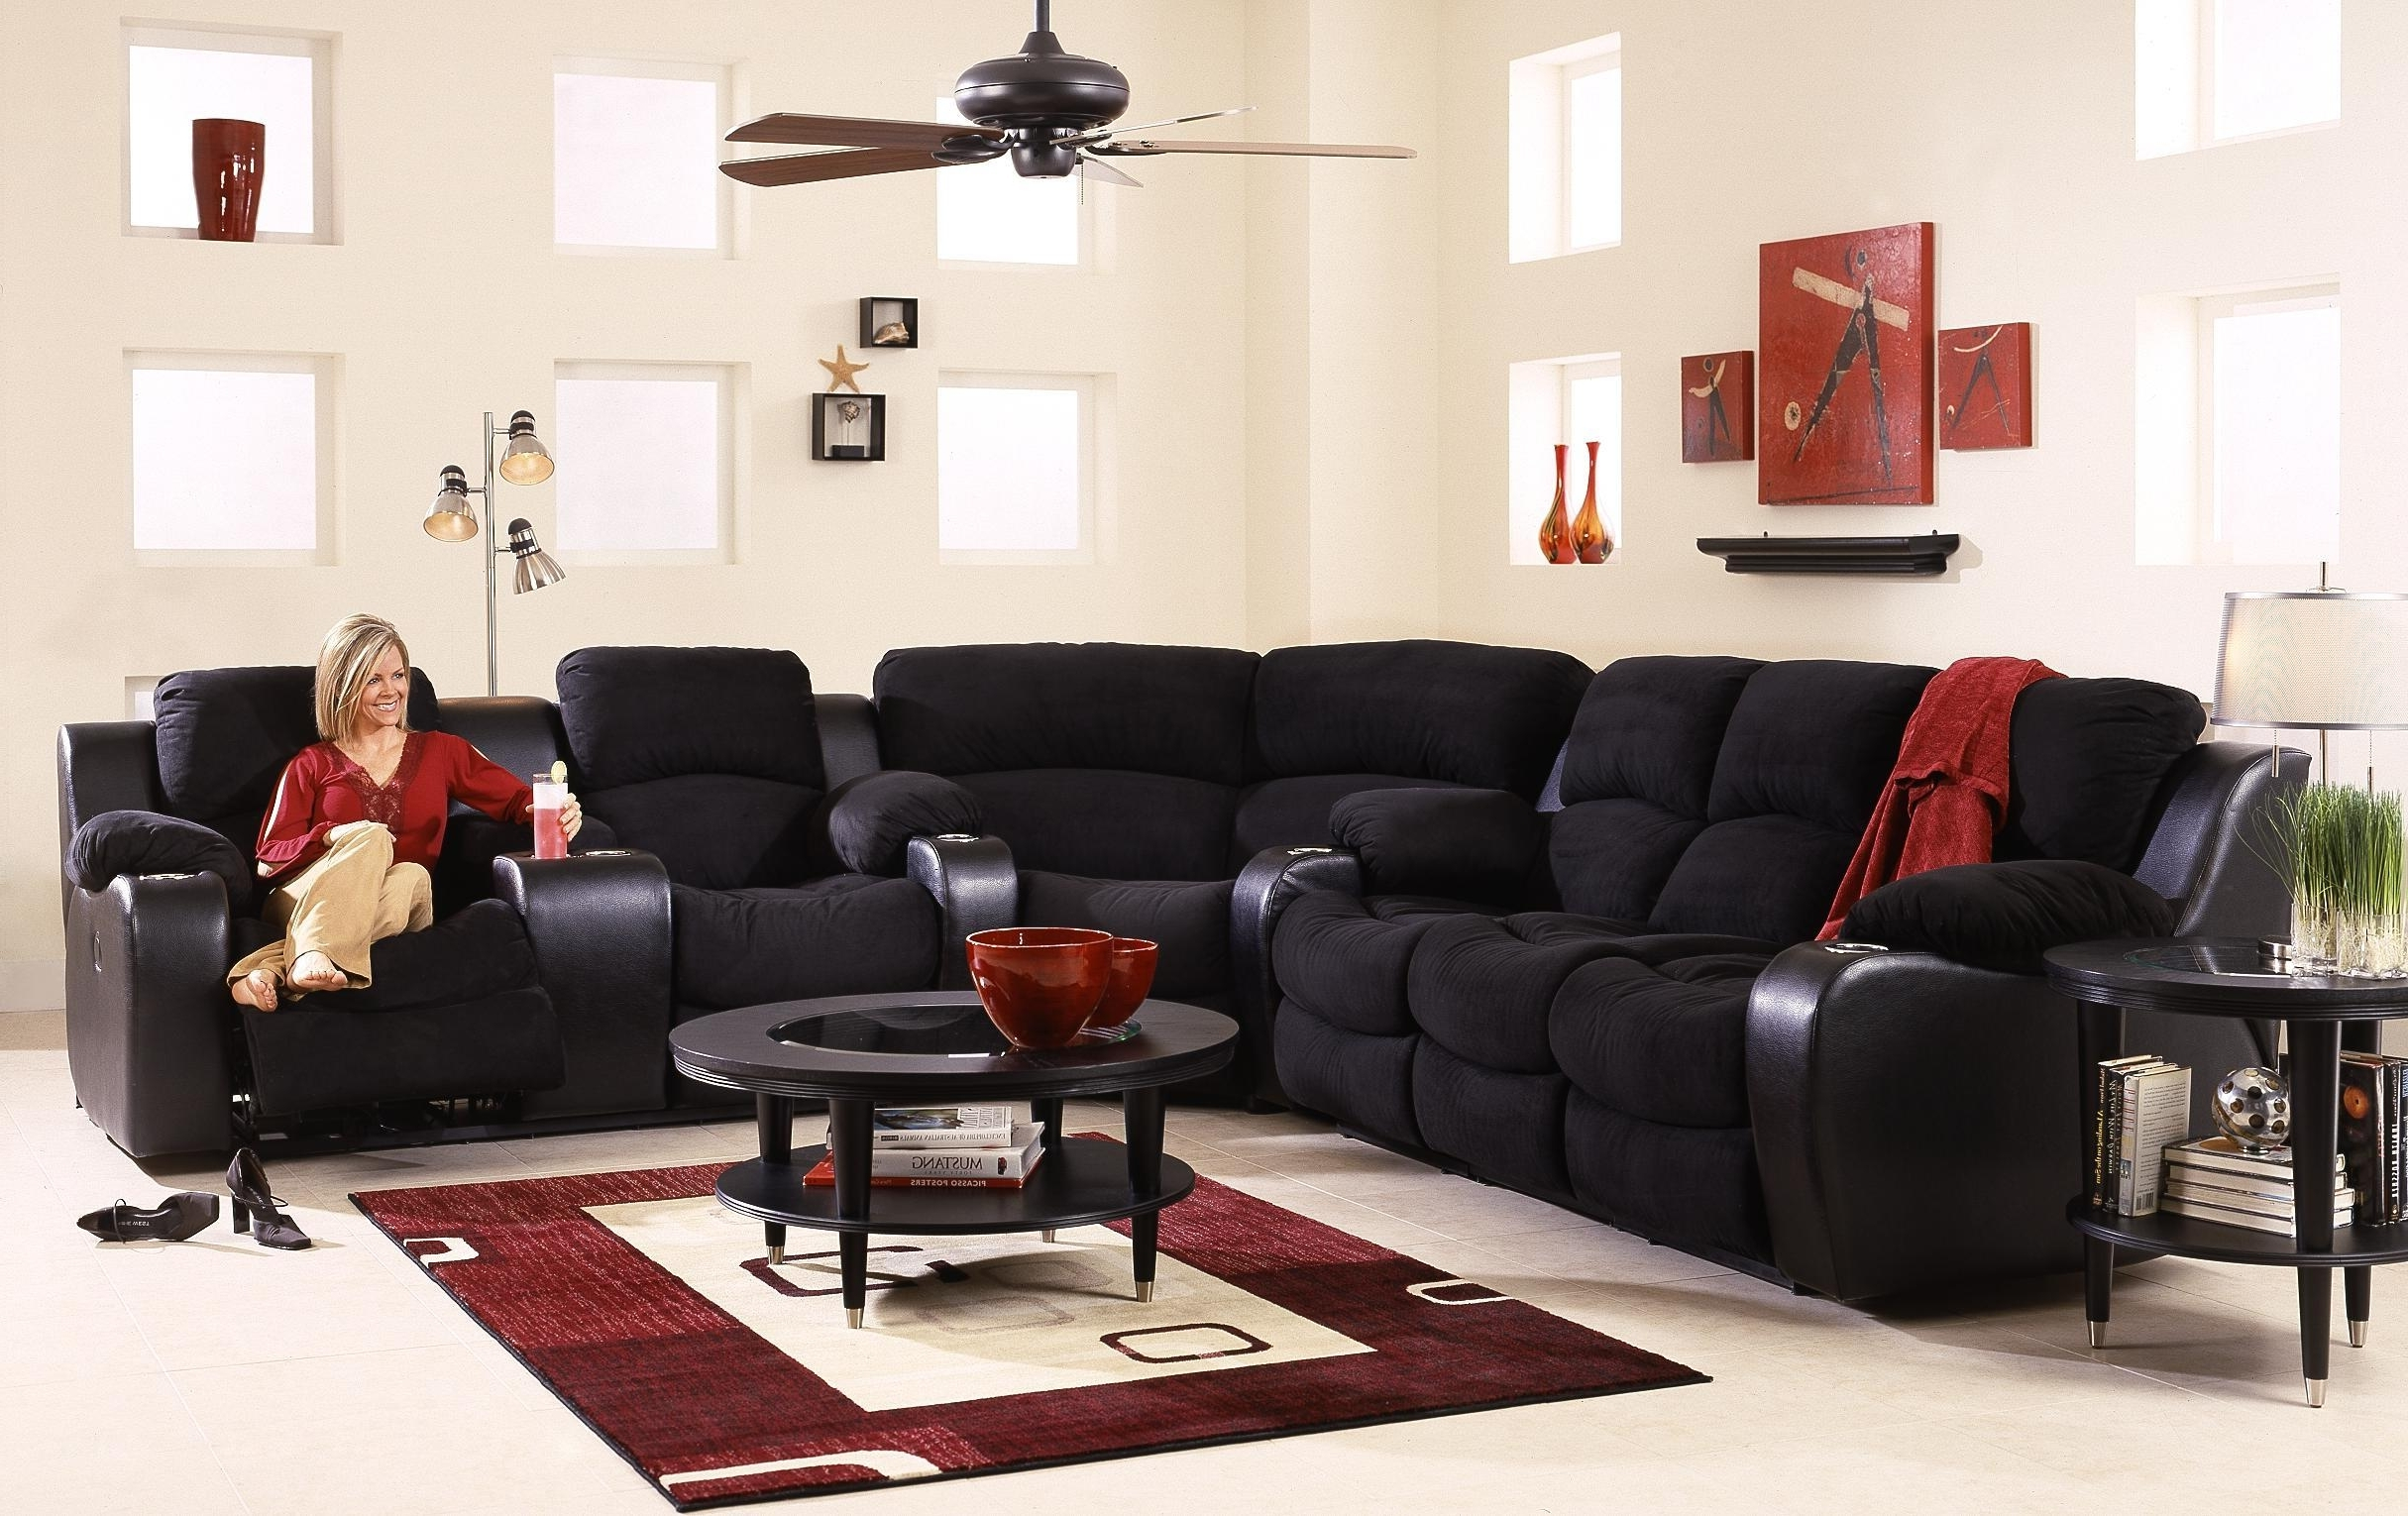 Most Popular Awesome Sectional Sofas With Cup Holders Unique – Tatsuyoru For Grand Furniture Sectional Sofas (View 5 of 15)